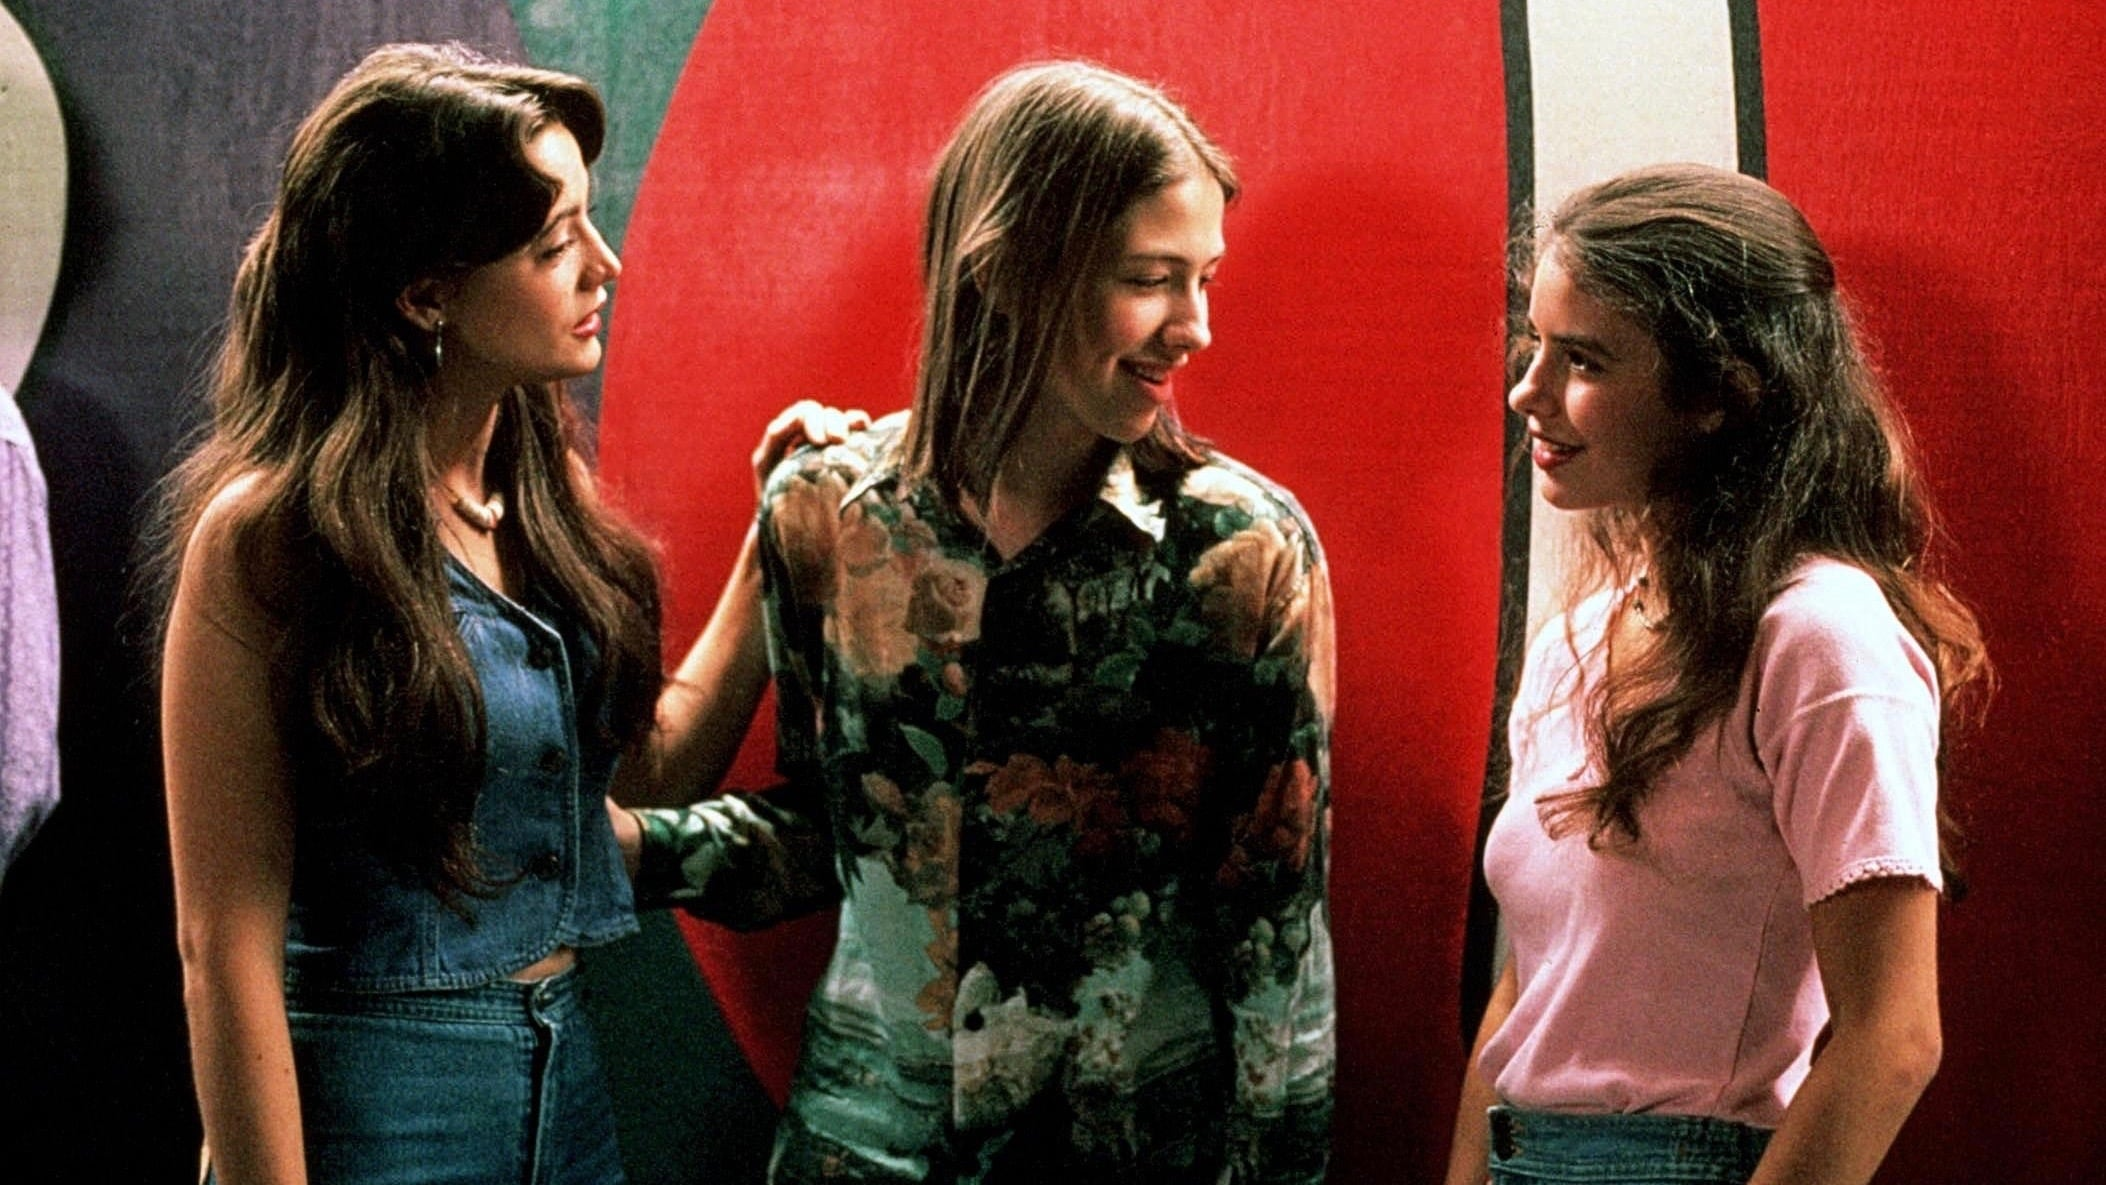 watch dazed and confused online free hd